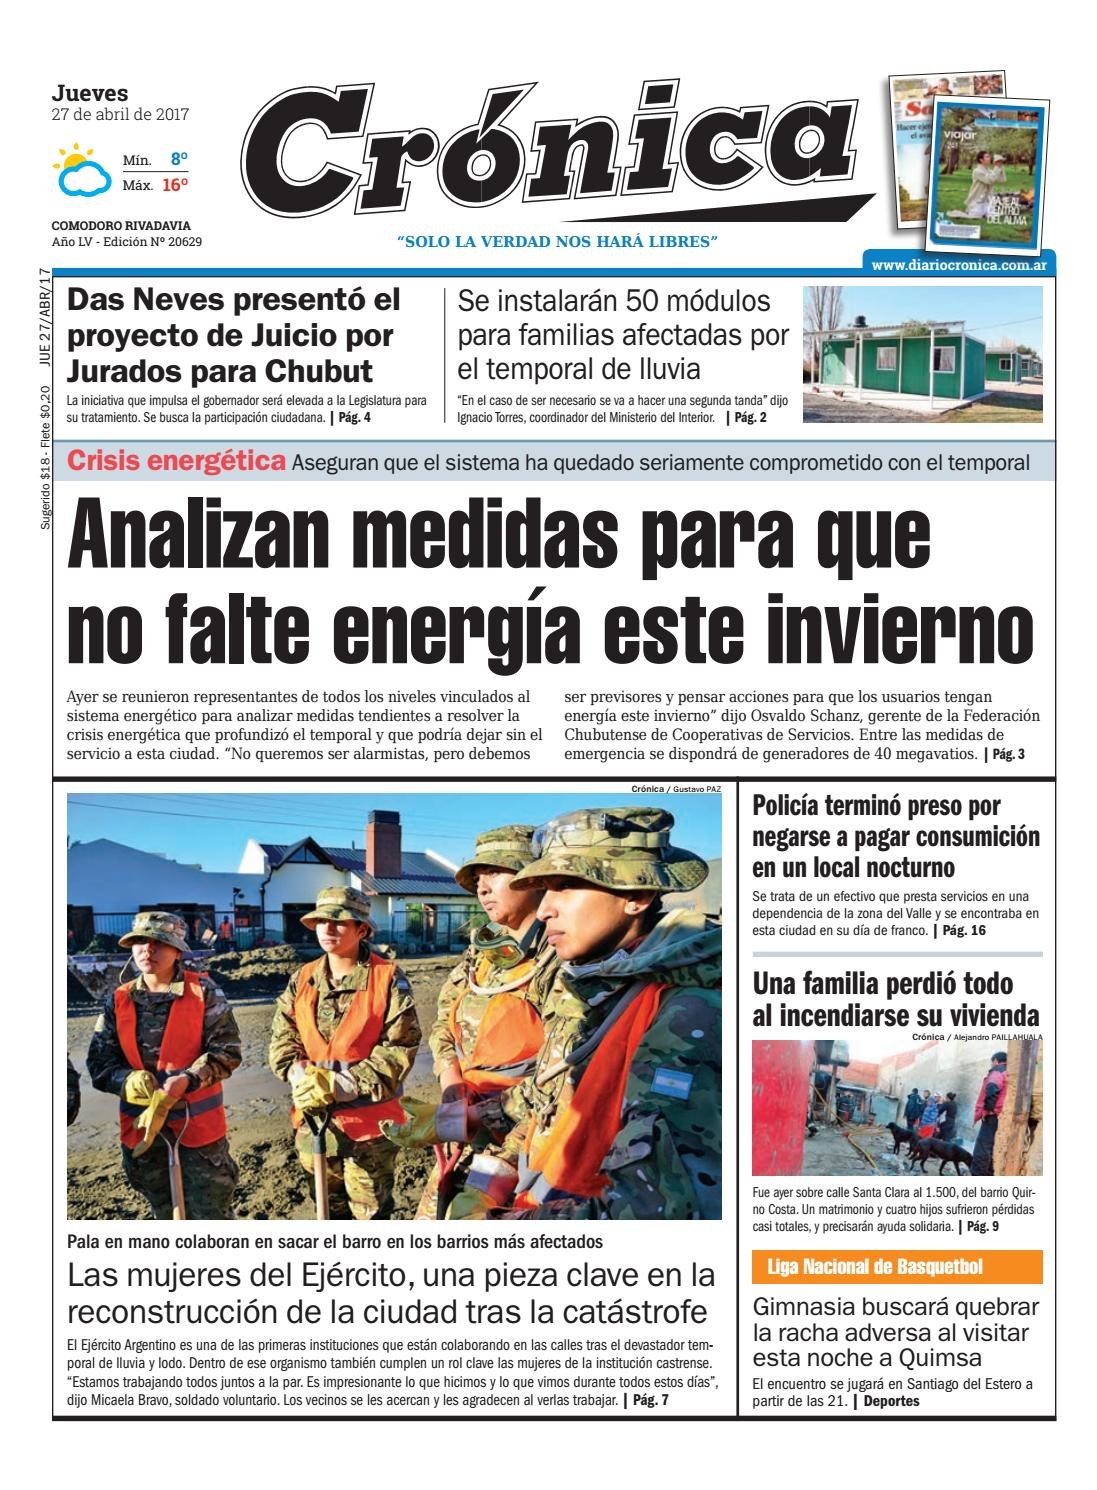 C84015a28e740fe8a3a69285bfd47f70 by Diario Crónica - issuu